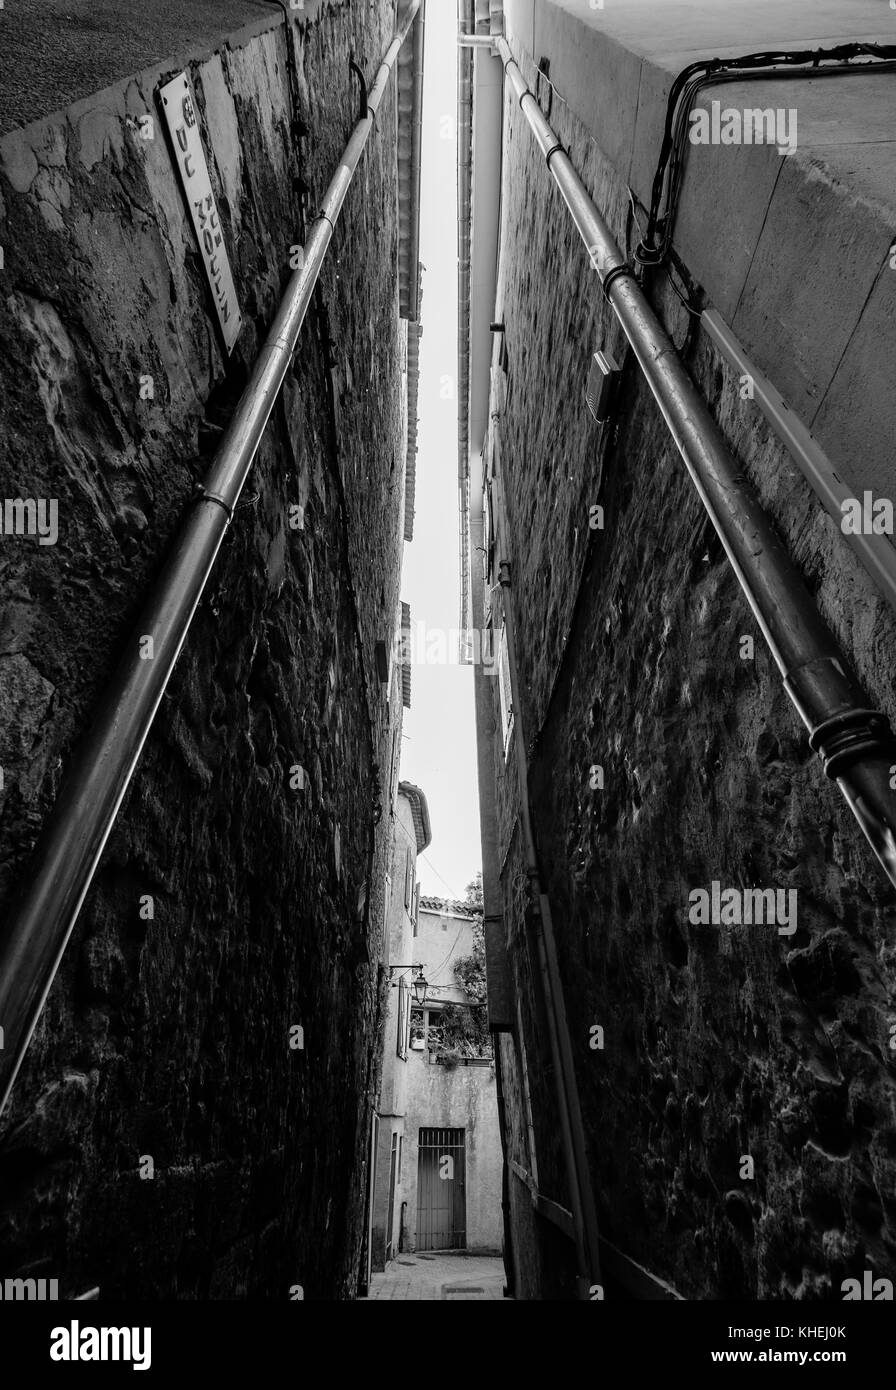 Narrow street in old city centre - Stock Image